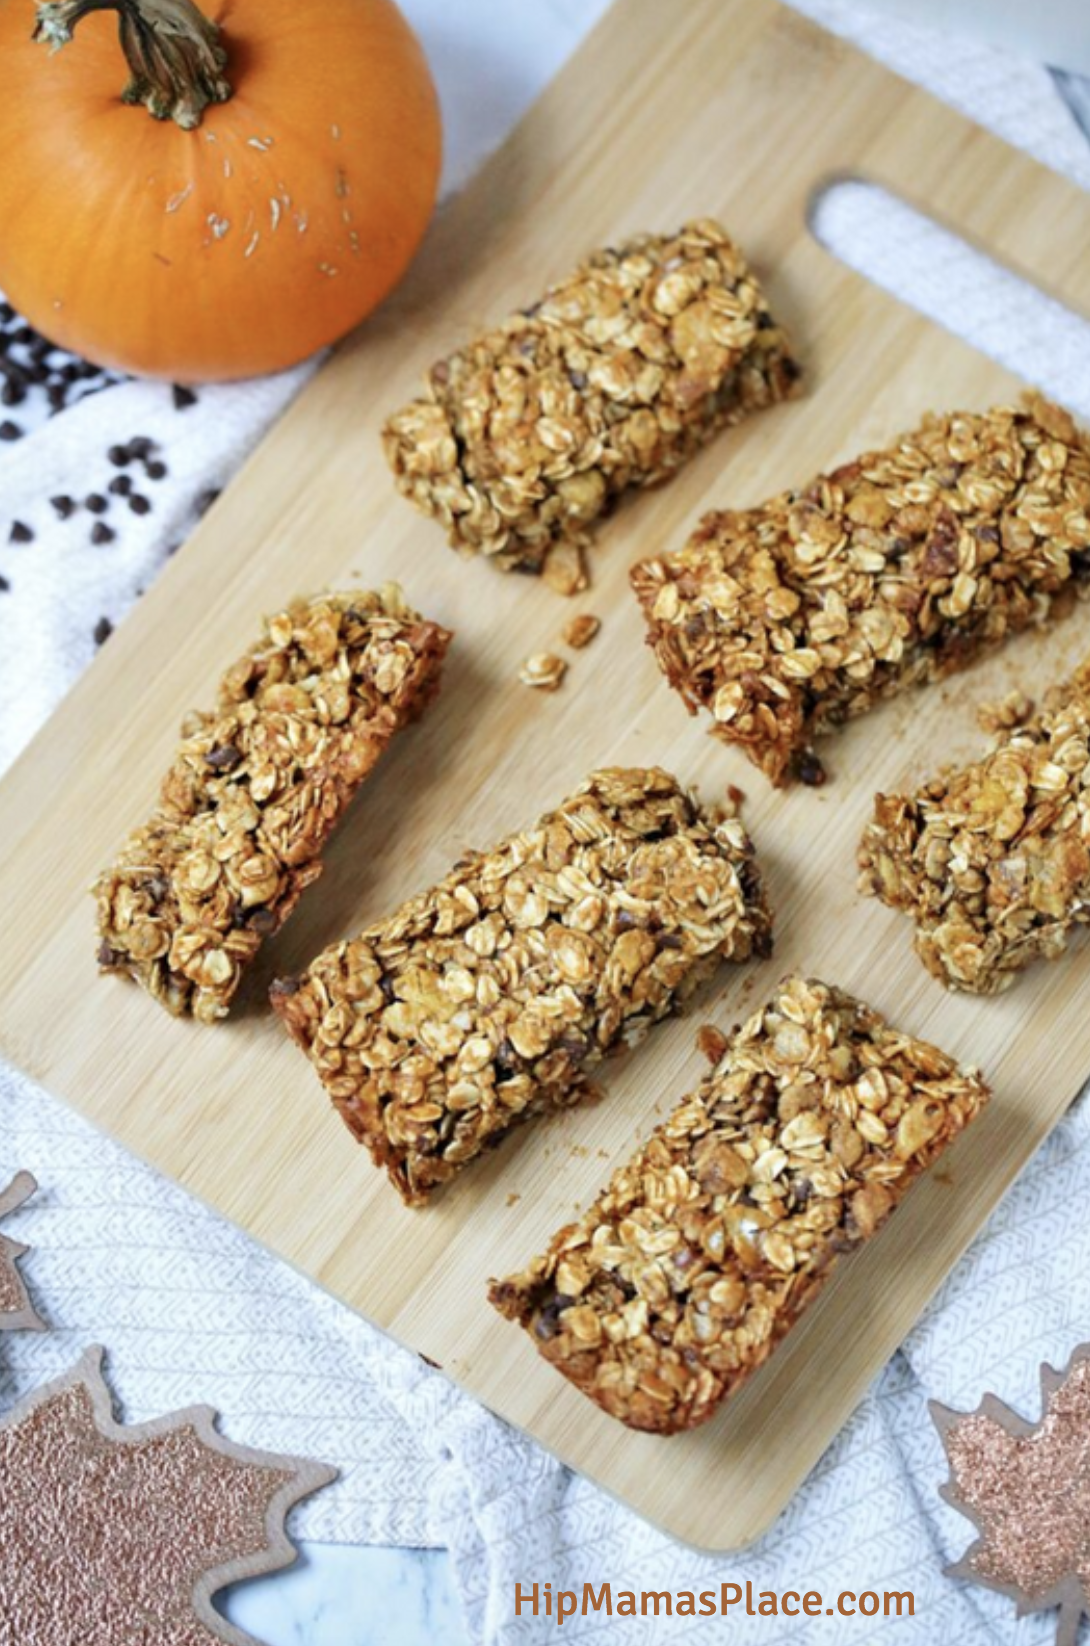 Pumpkin-Almond Chocolate Chip Granola Bars made with Honey Bunches of Oats® with Almonds